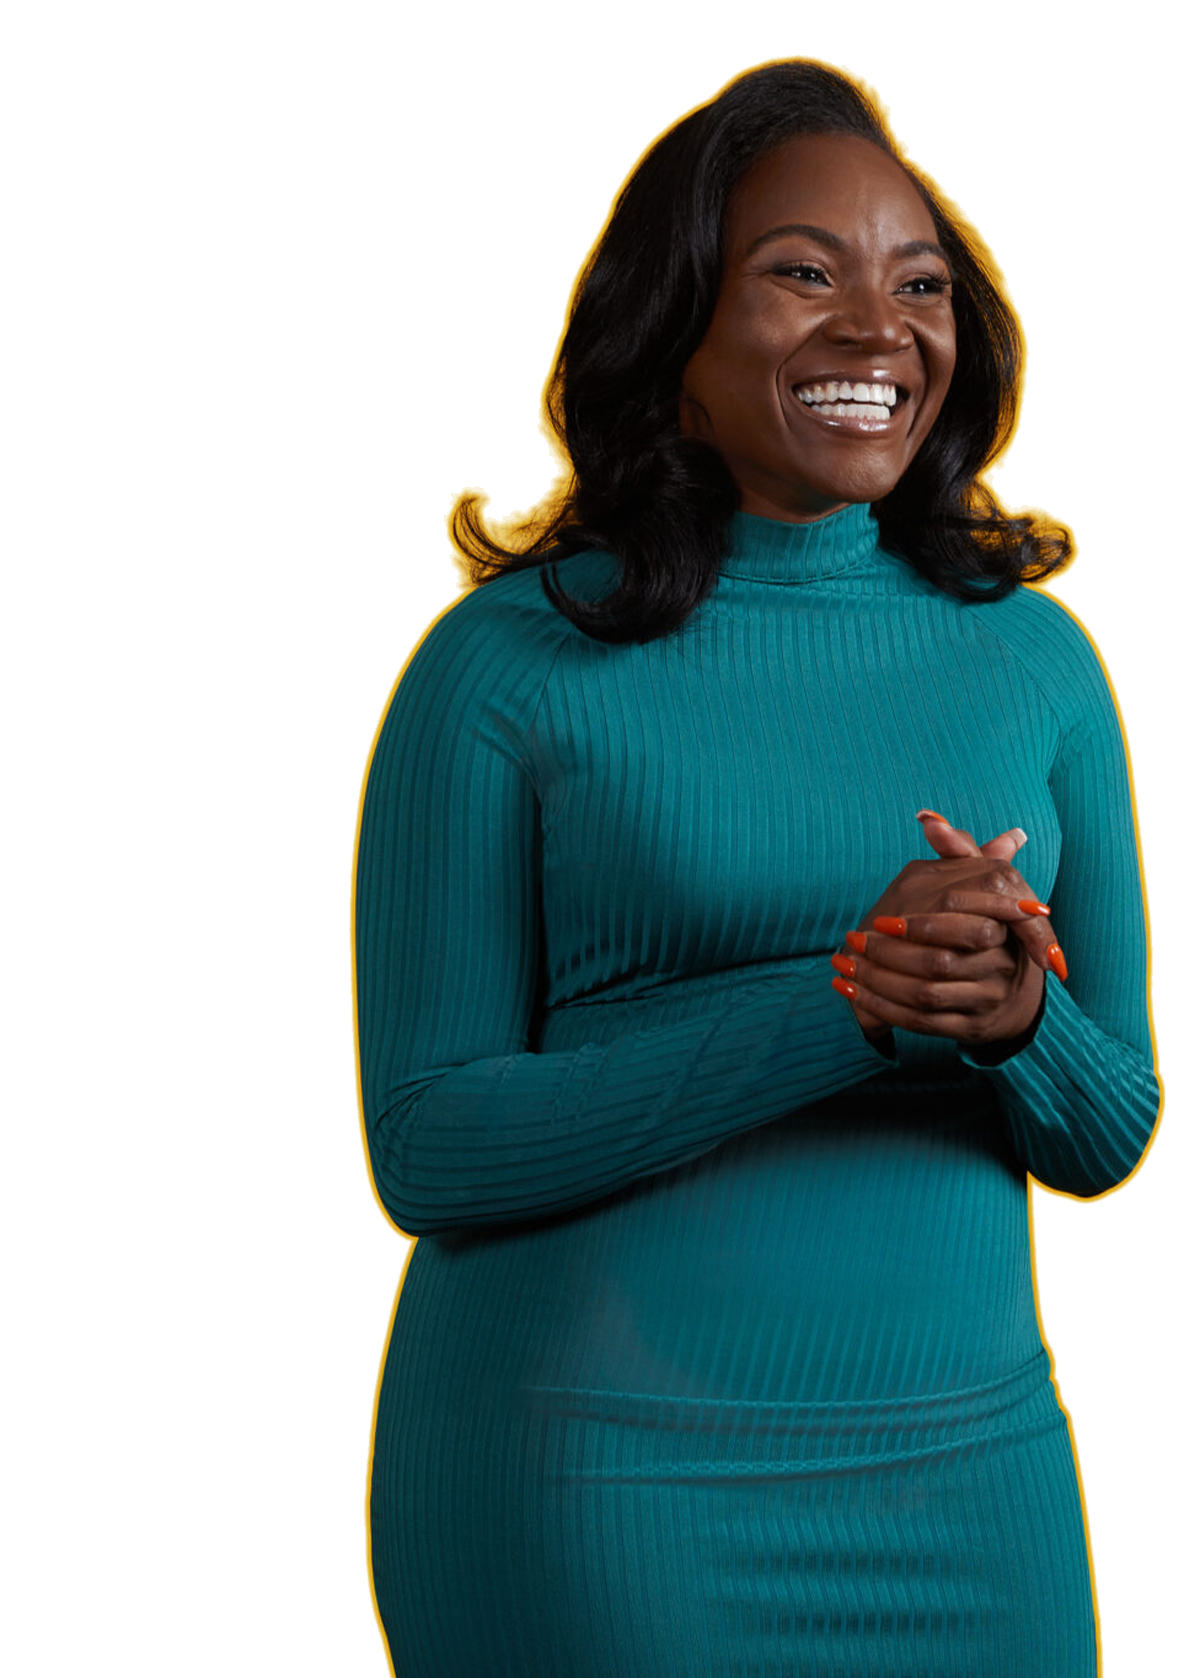 Kizzmekia Corbett wearing a longsleeve, teal turtleneck dress, smiles and looks off camera with her hands clasped.